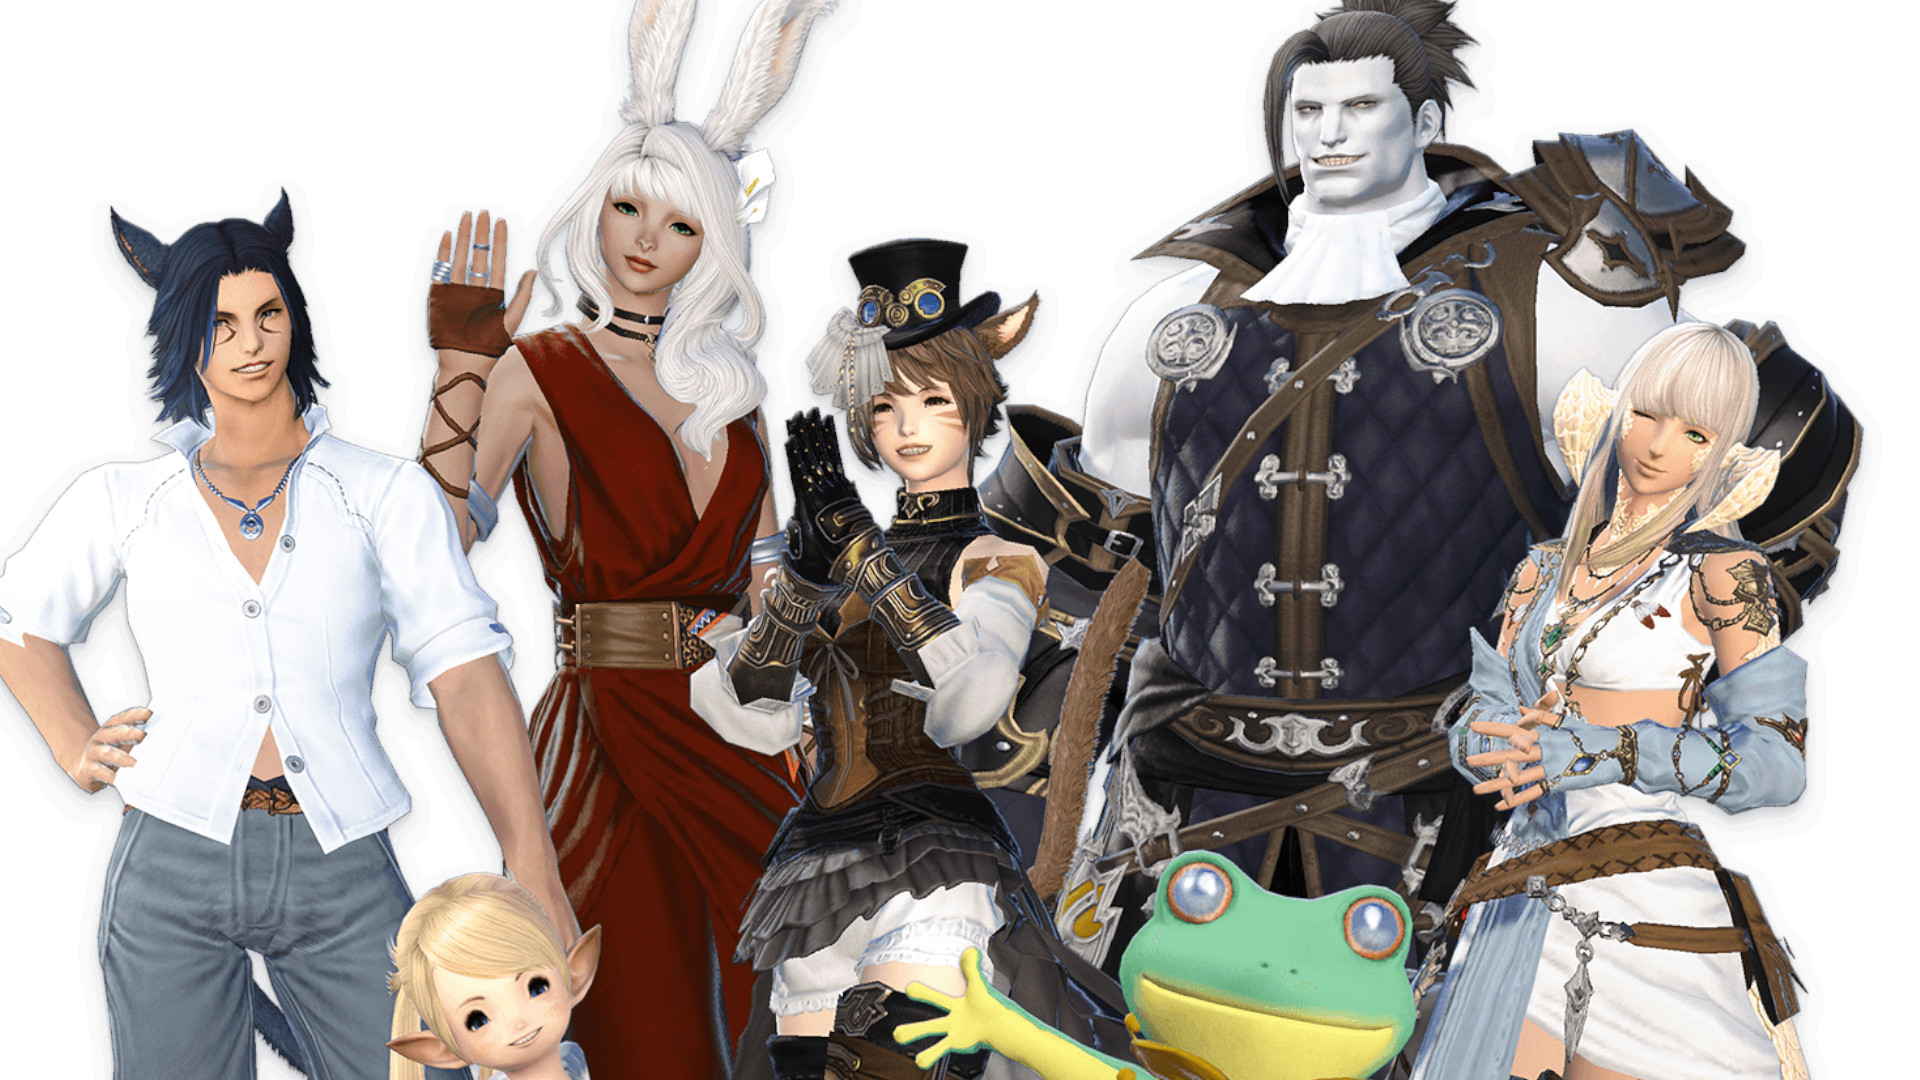 Final Fantasy XIV is now free to returning players for a limited time